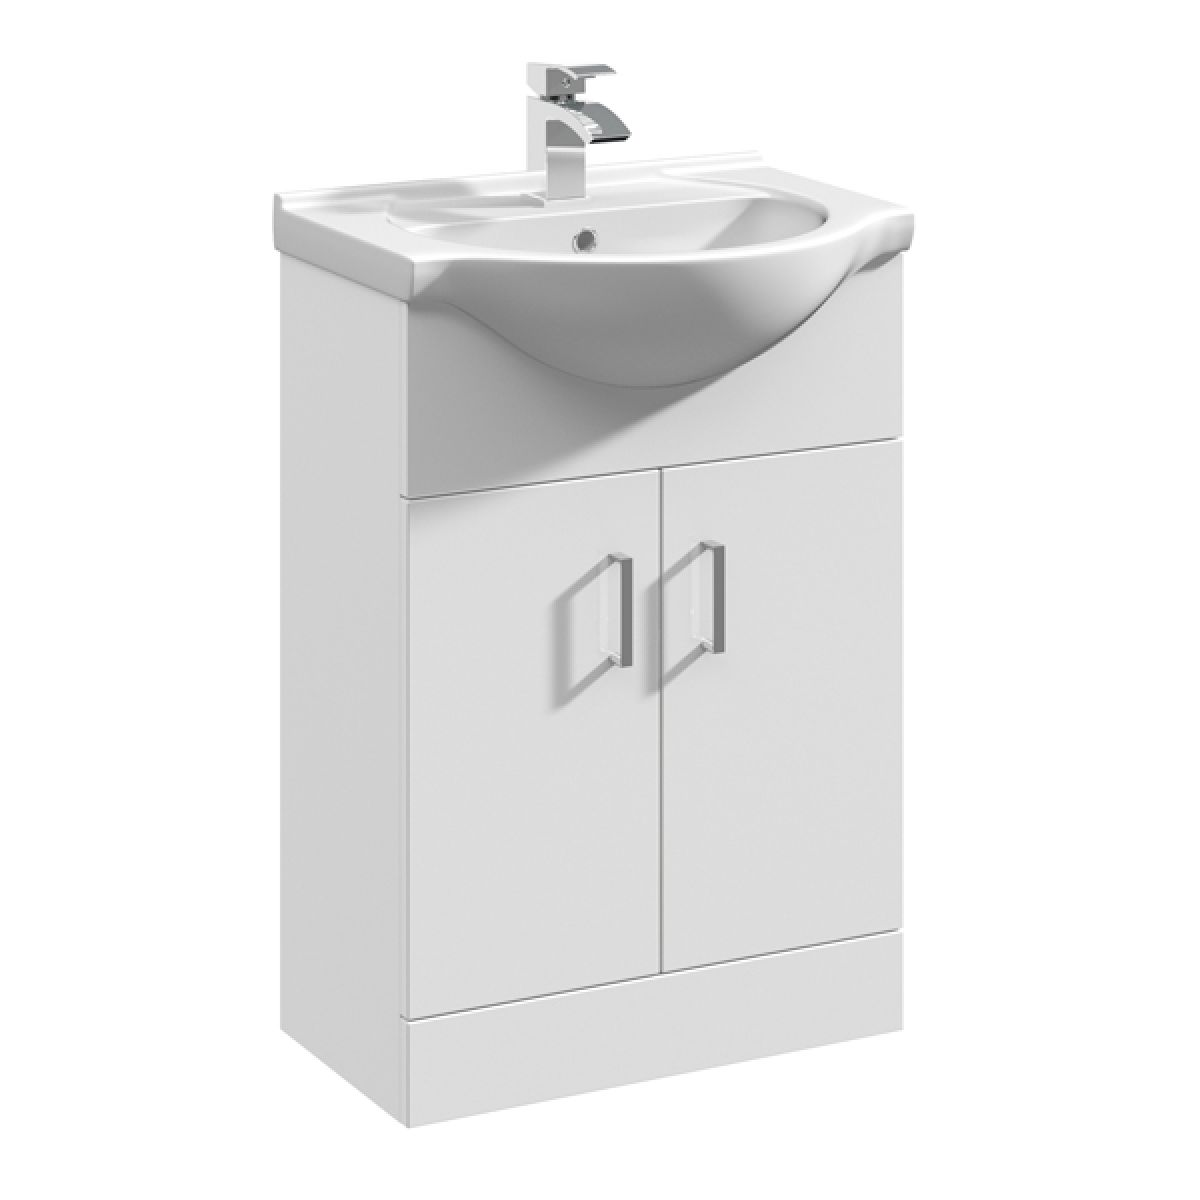 Premier High Gloss White Vanity Unit with Standard Basin 550mm